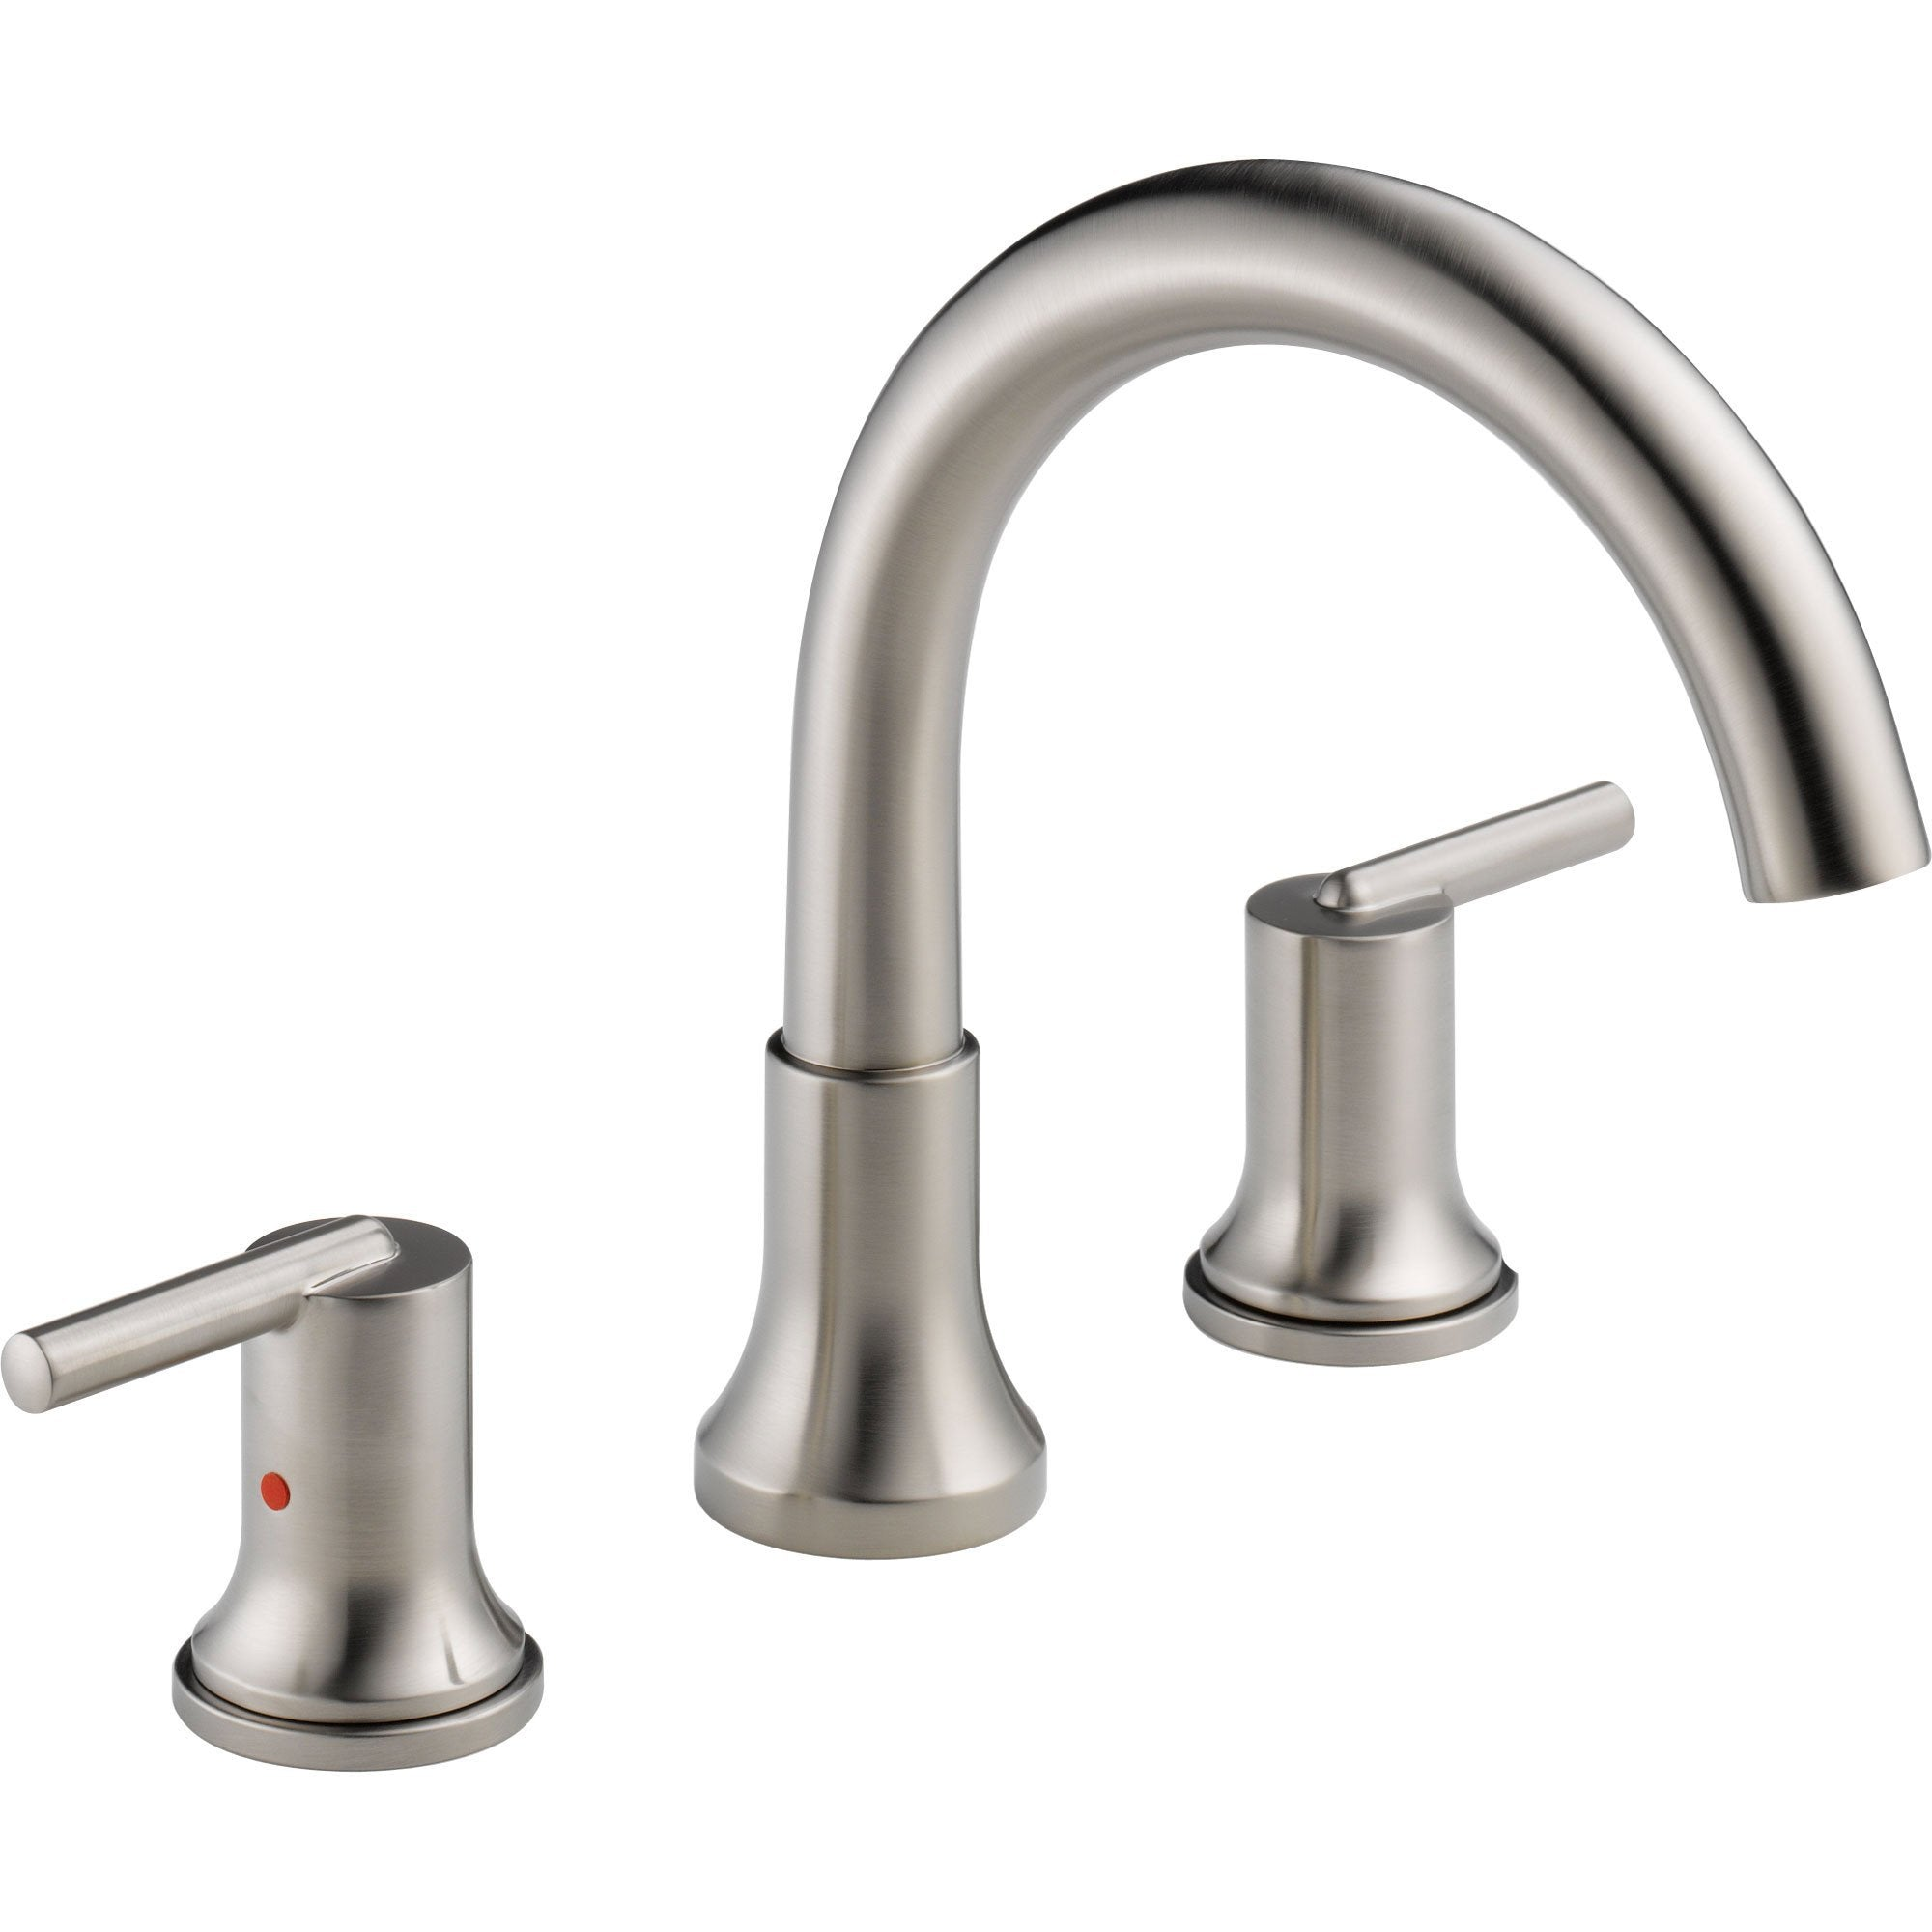 Delta Trinsic Modern Stainless Steel Finish Roman Tub Faucet with Valve D911V